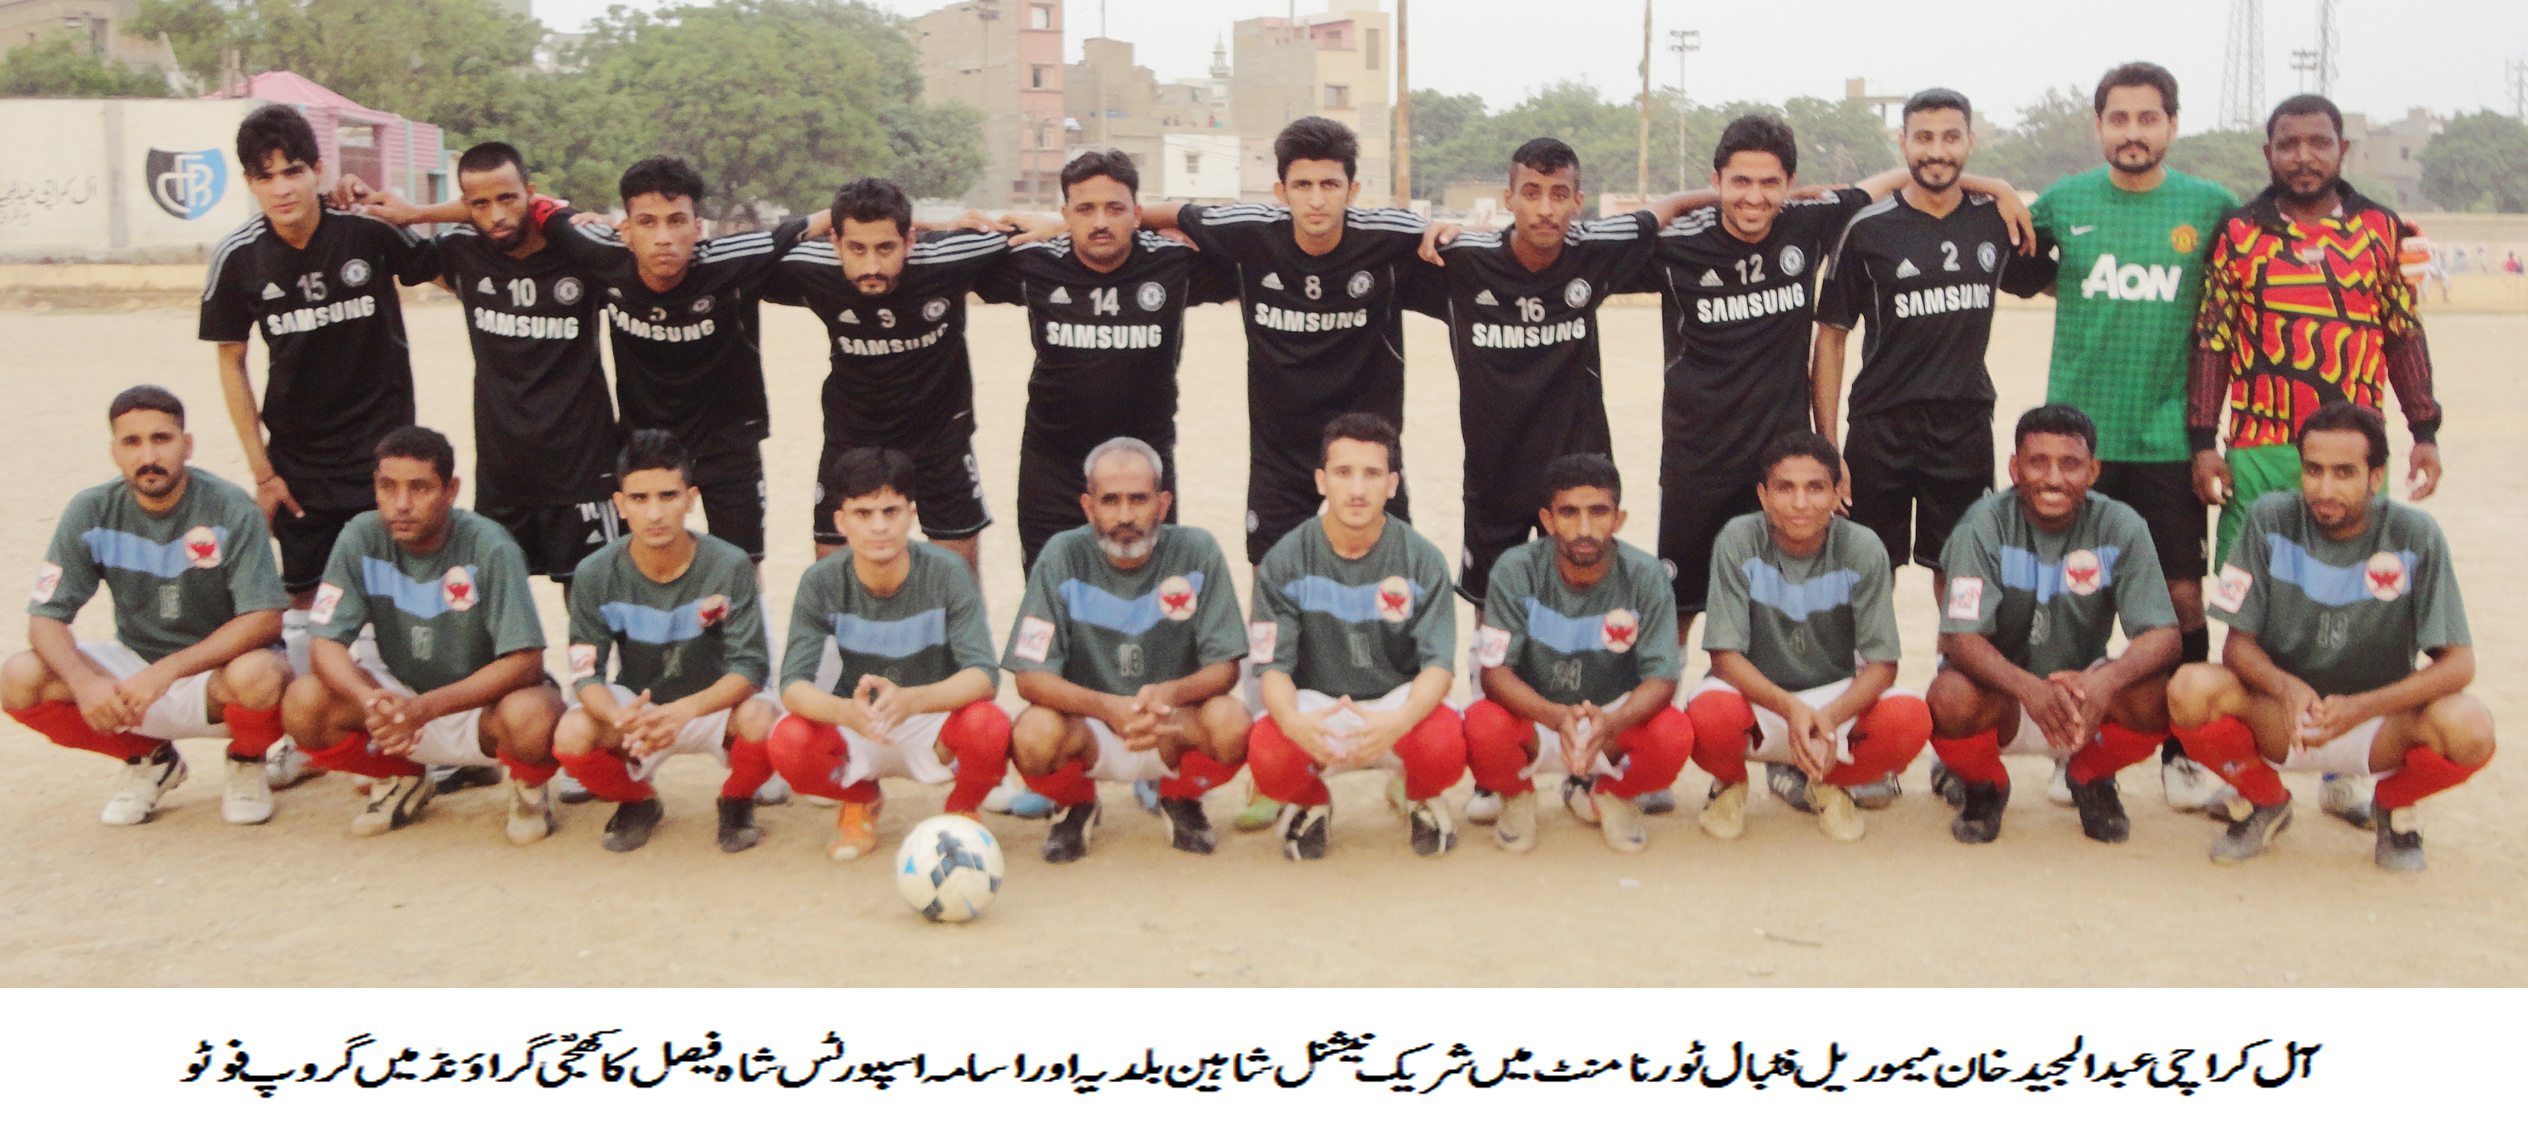 All-Karachi Abdul Majeed Khan Memorial Football Tournament: National Shaheen and Korangi National grab wins